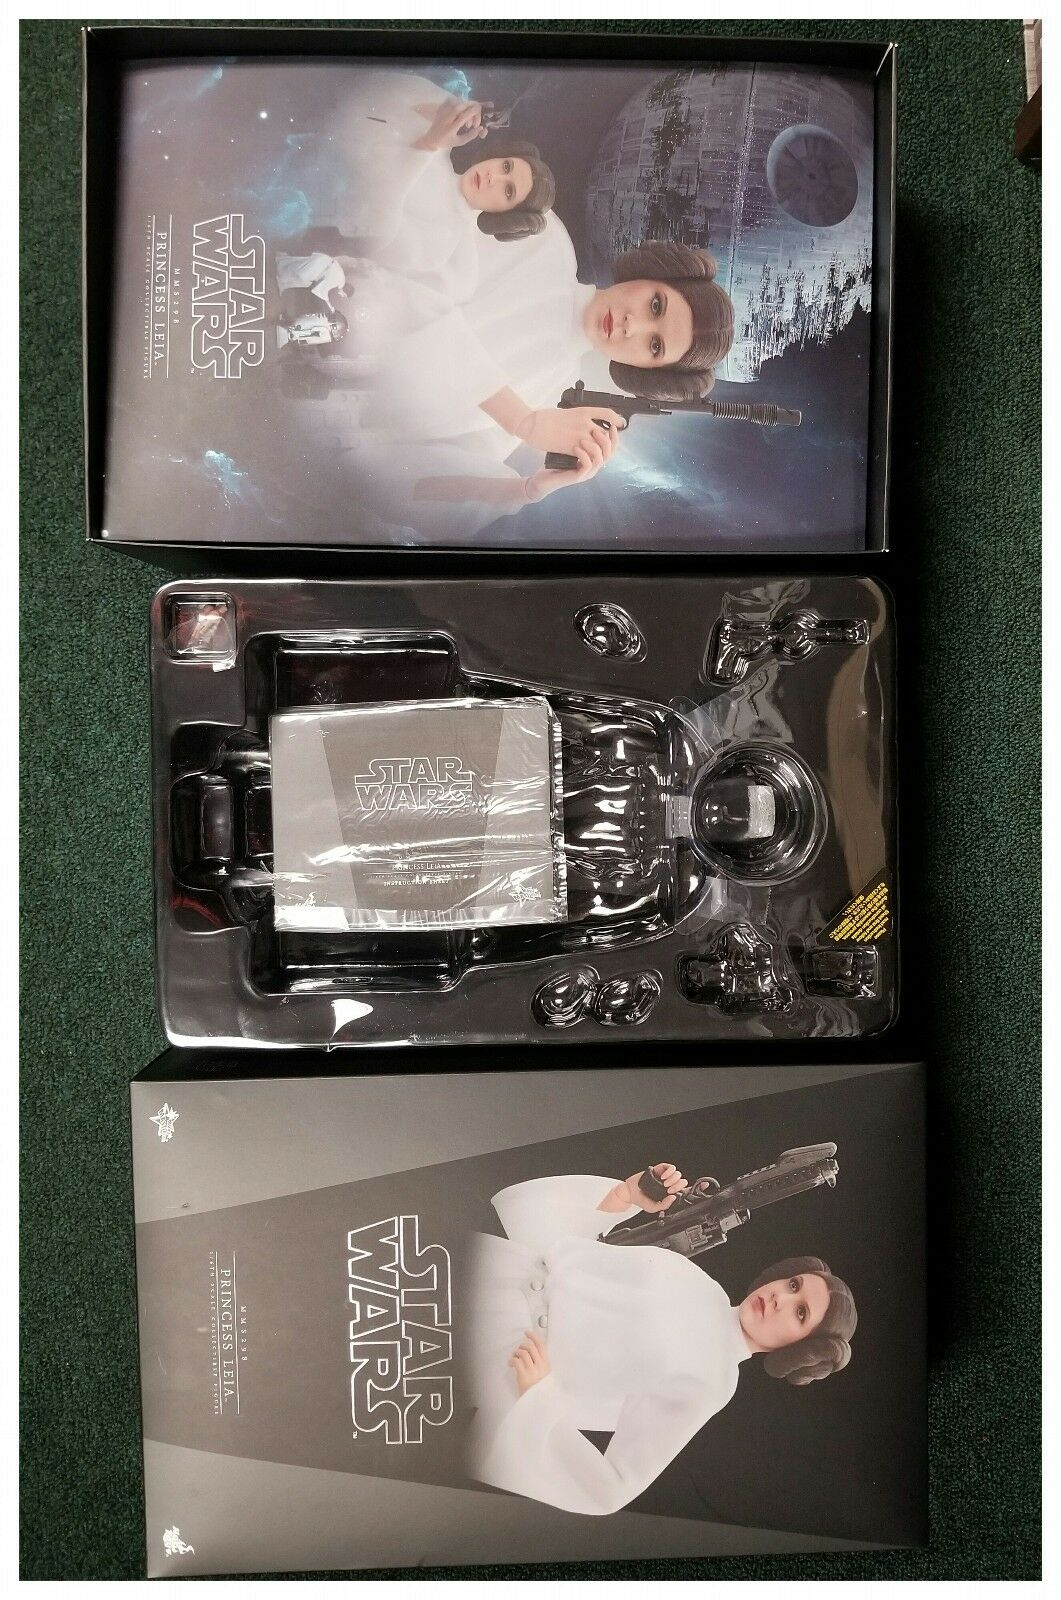 1/6 Hot Toys Star Wars Princess Leia MMS298 Empty Box With Plastic Inserts